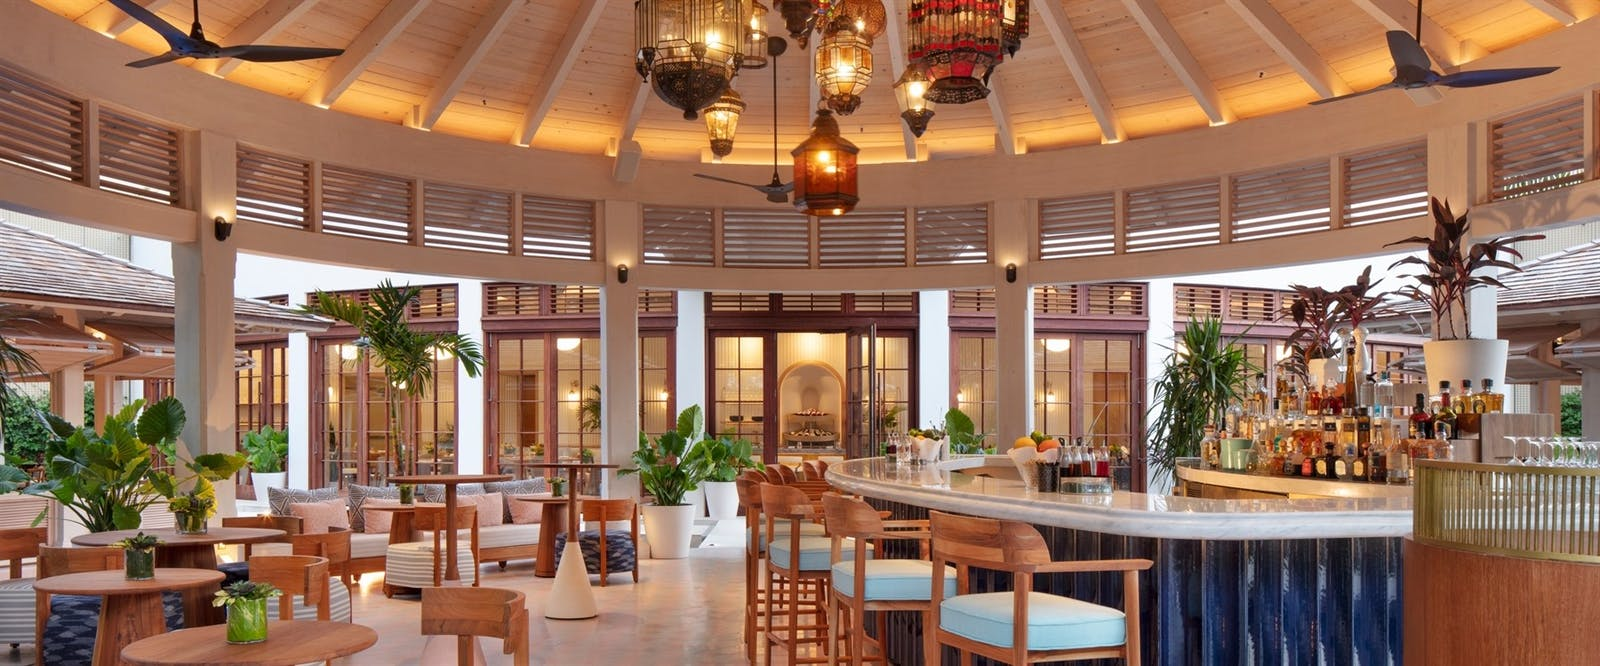 Outdoor Bar at Rosewood Baha Mar, Bahamas, Caribbean